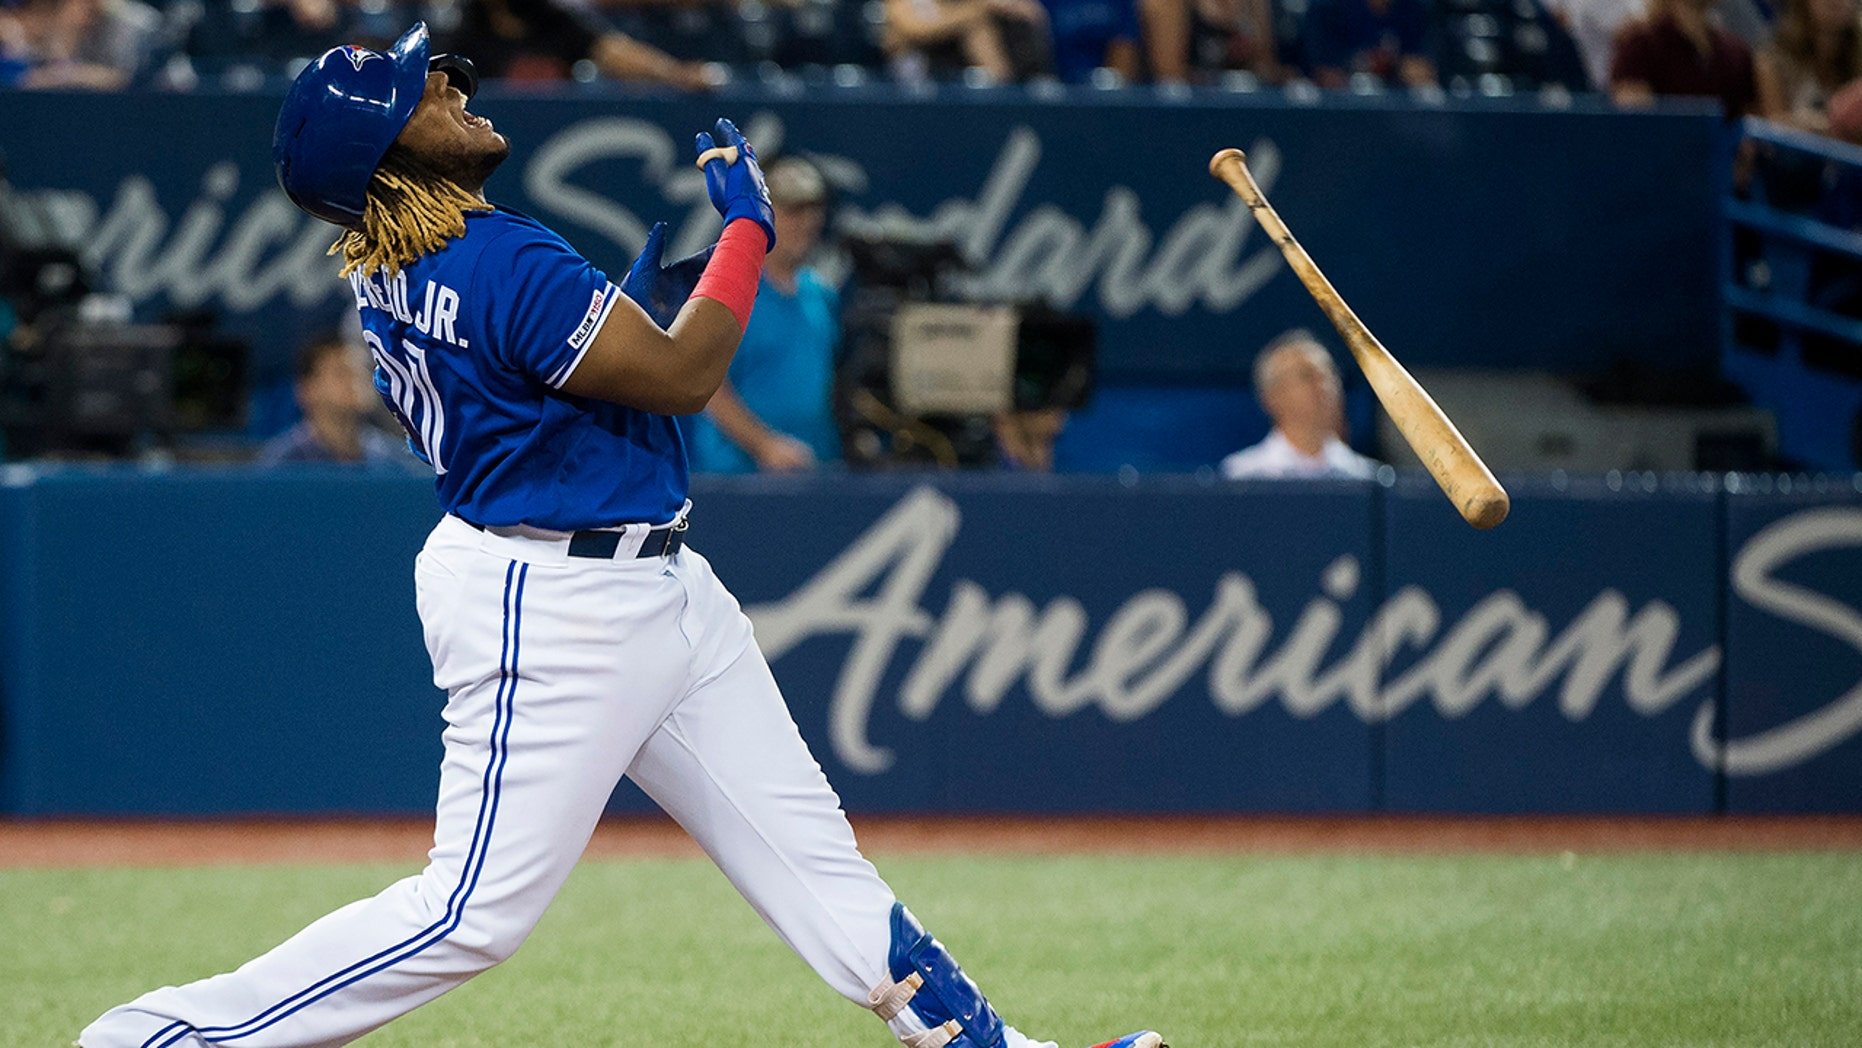 Toronto Blue Jays designated hitter Vladimir Guerrero Jr. reacts after hitting a pop flyout during ninth-inning baseball game action against the Tampa Bay Rays in Toronto, Sunday, July 28, 2019. (Nathan Denette/The Canadian Press via AP)